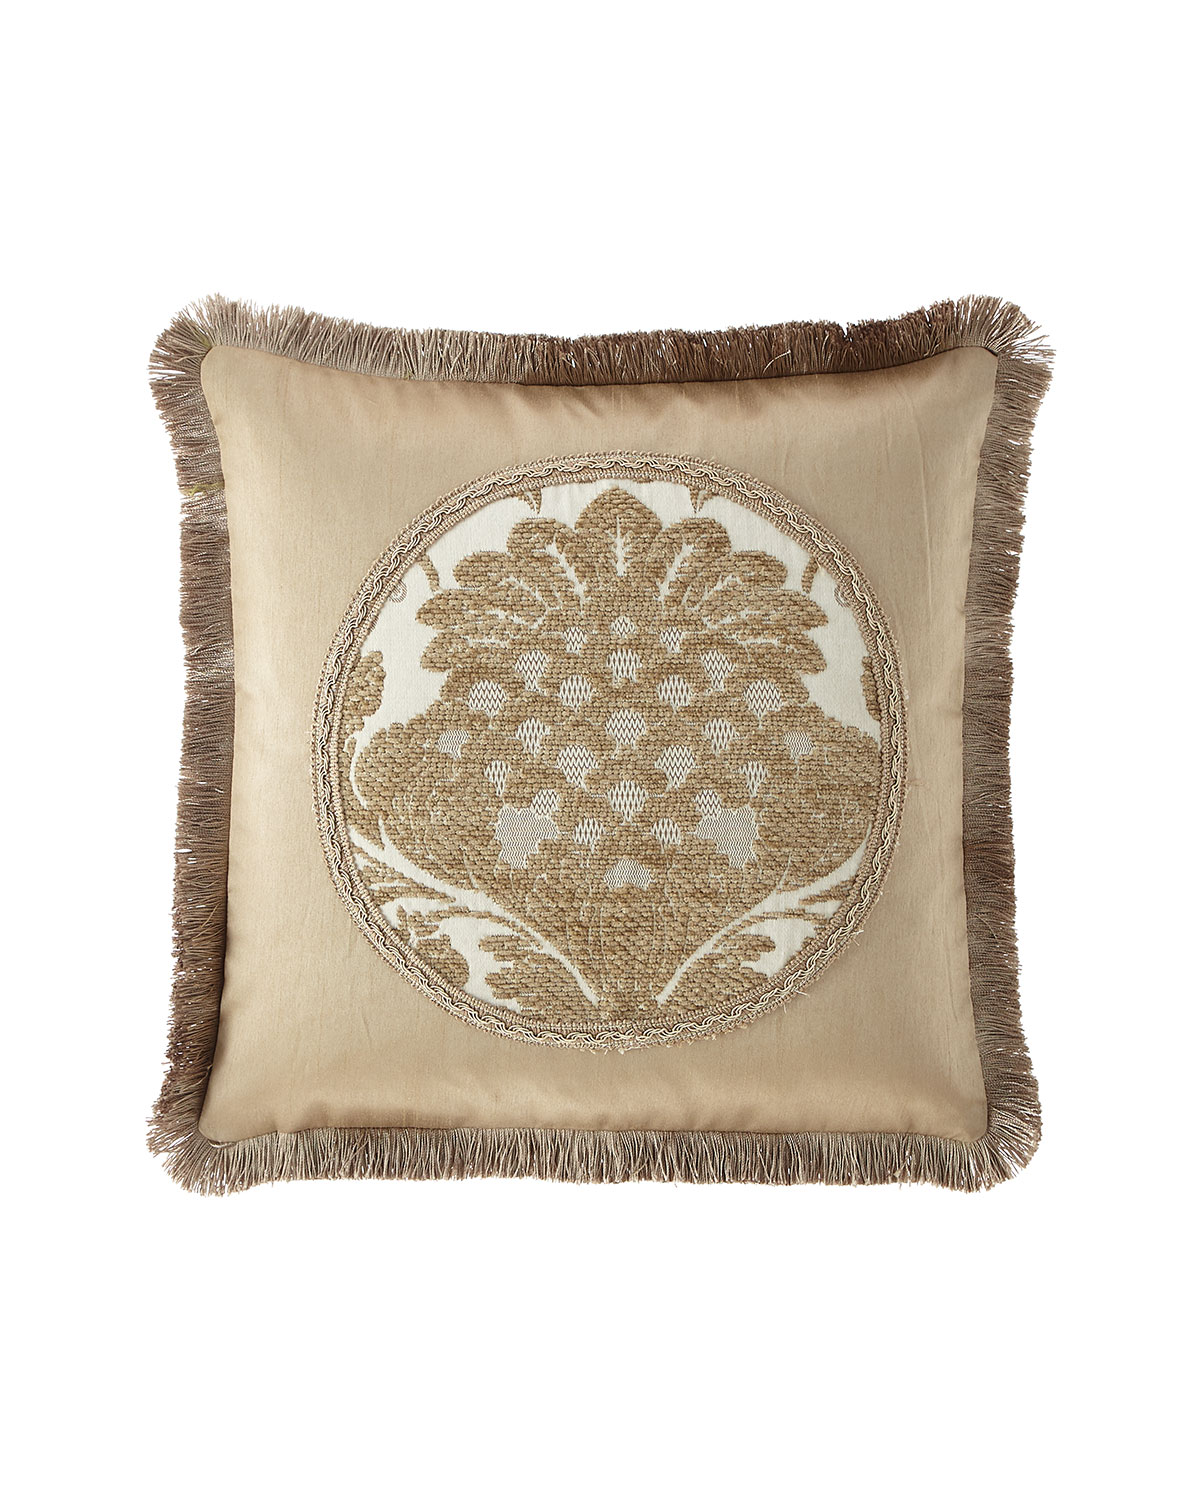 Austin Horn Collection Everleigh Framed Pillow